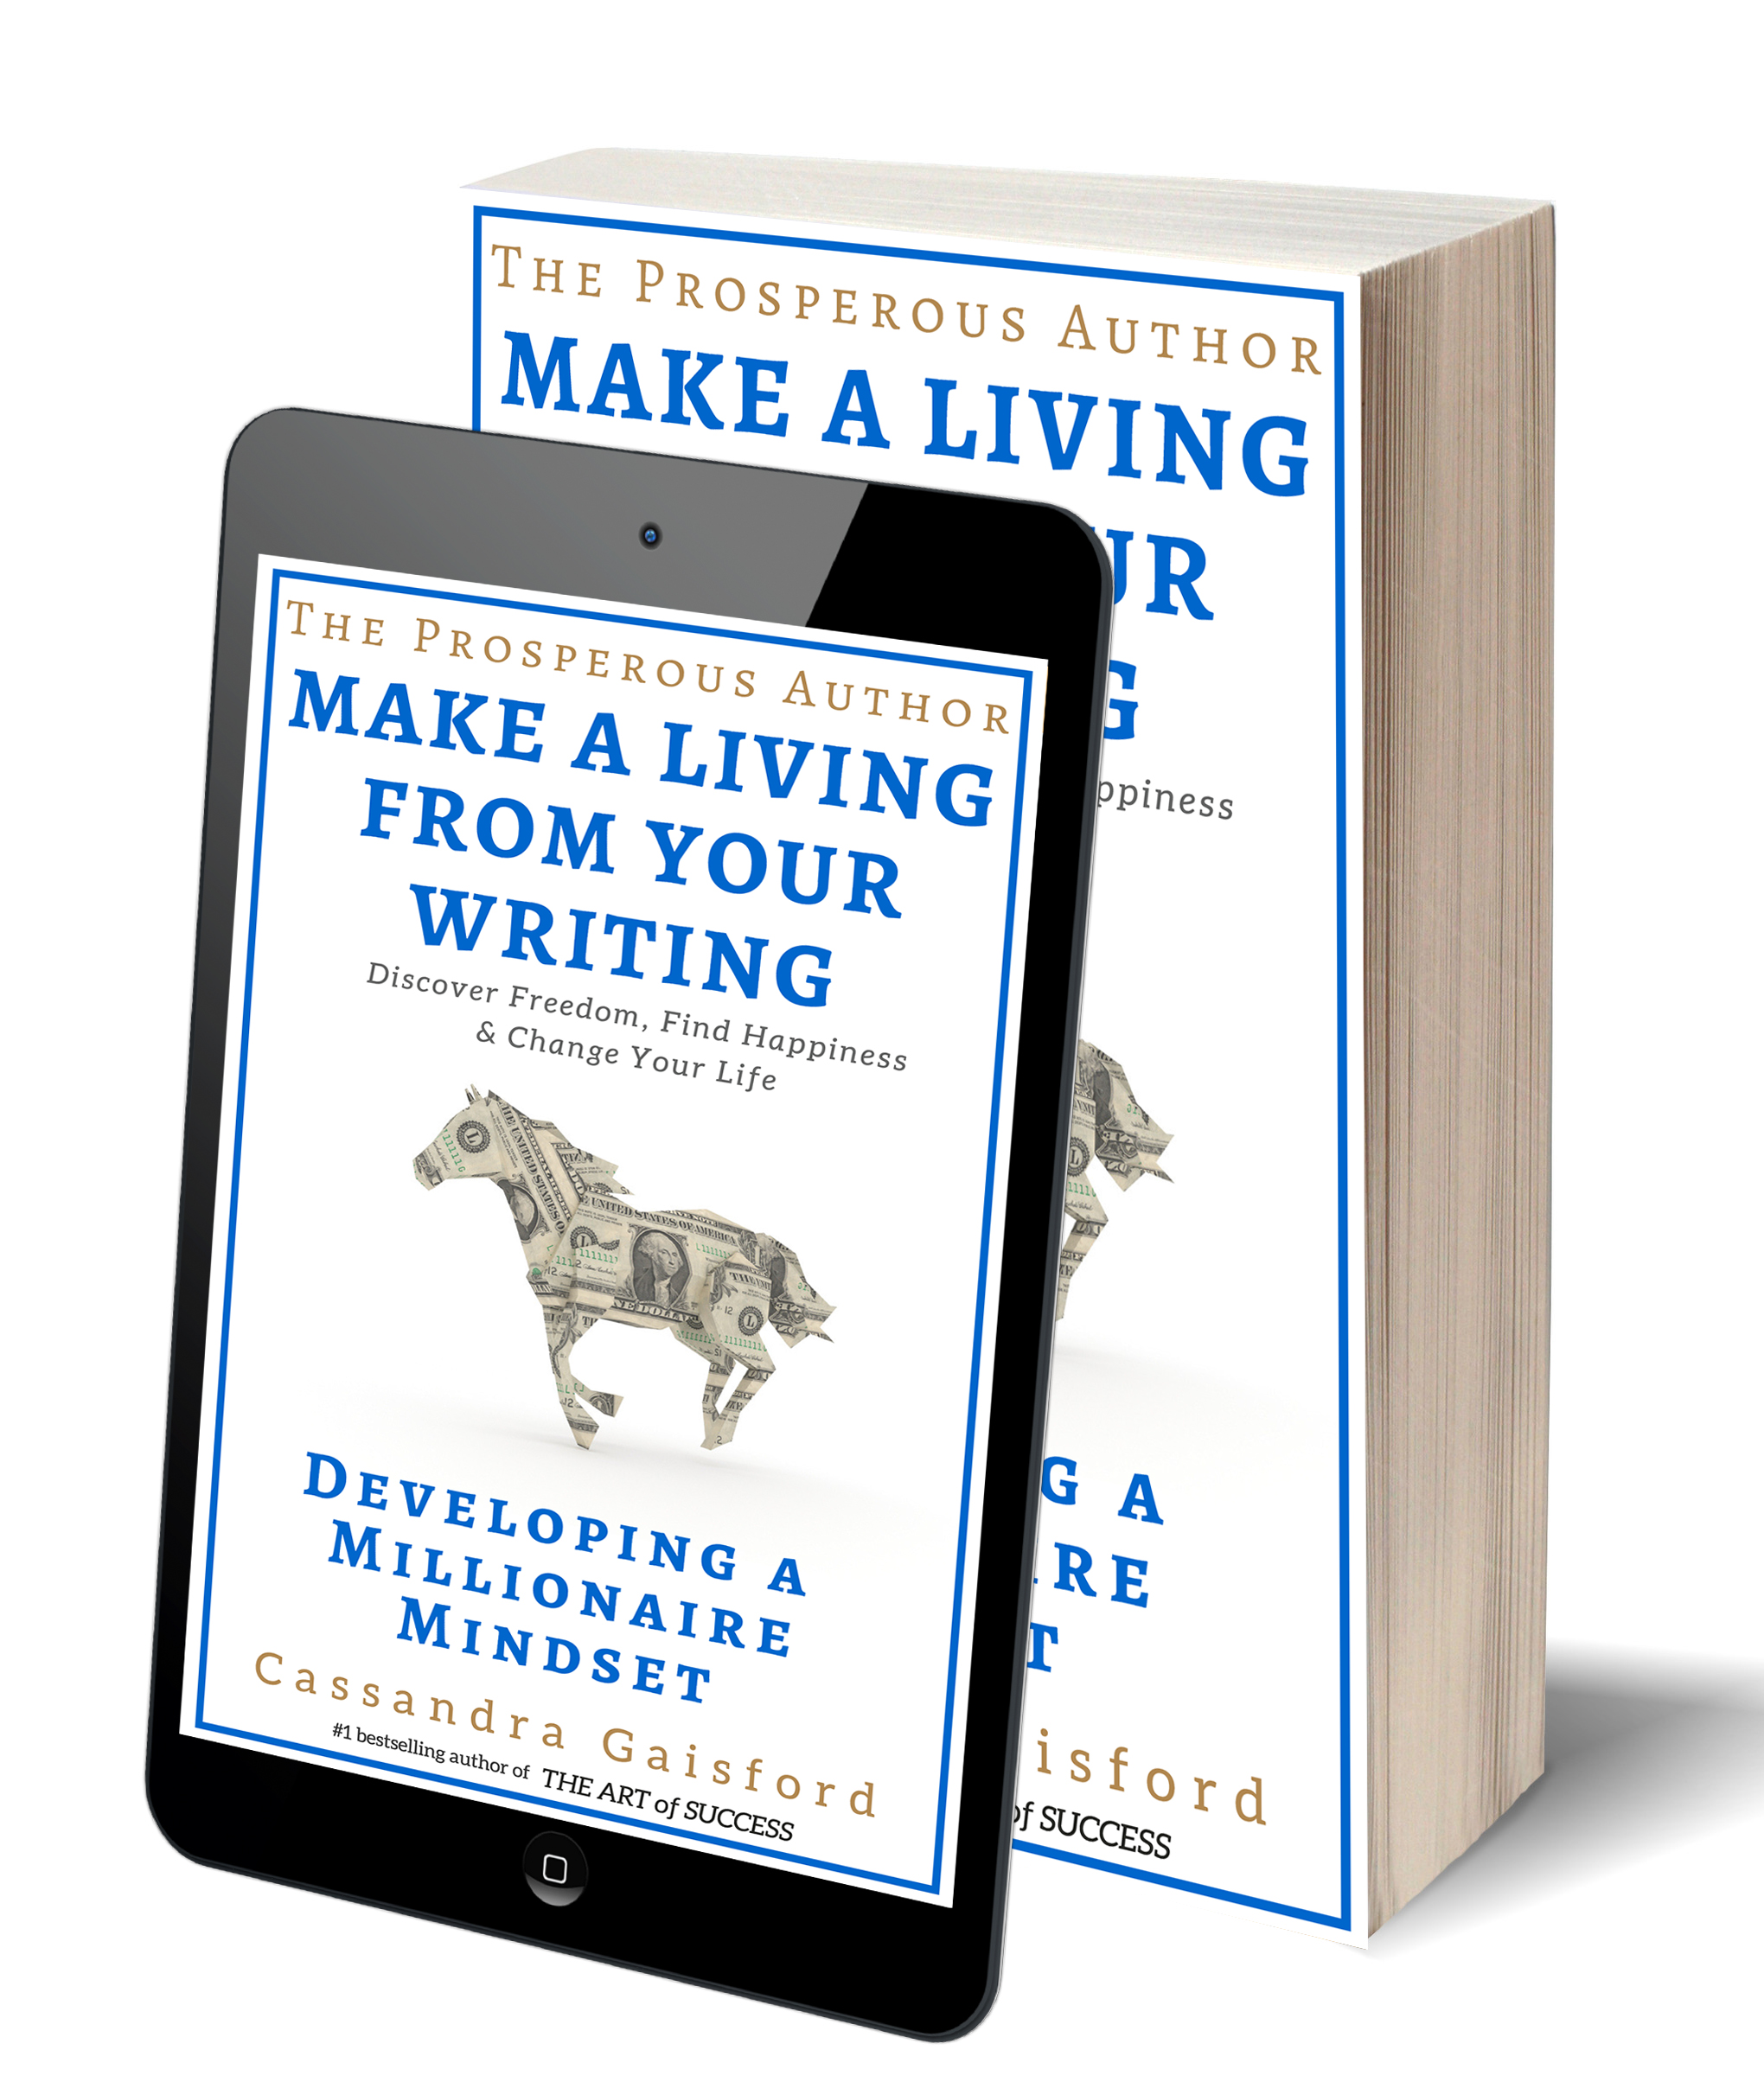 The art of success cassandra gaisford the prosperous author how to make a living with your writing book one developing a millionaire mindset by cassandra gaisford order the ebook today fandeluxe Gallery